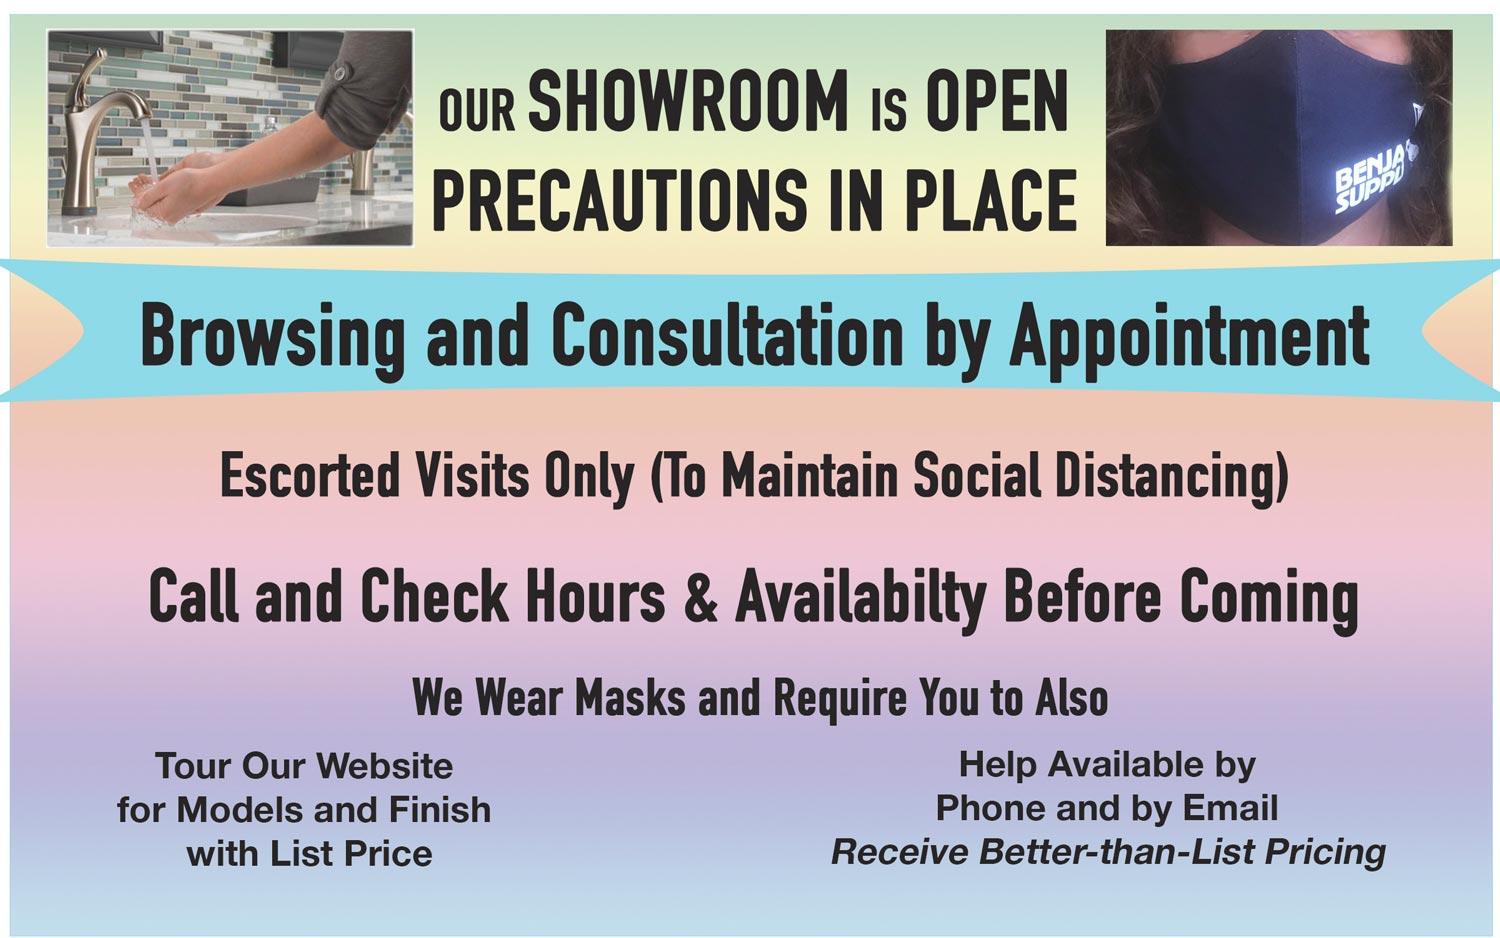 Appointments needed to visit our store